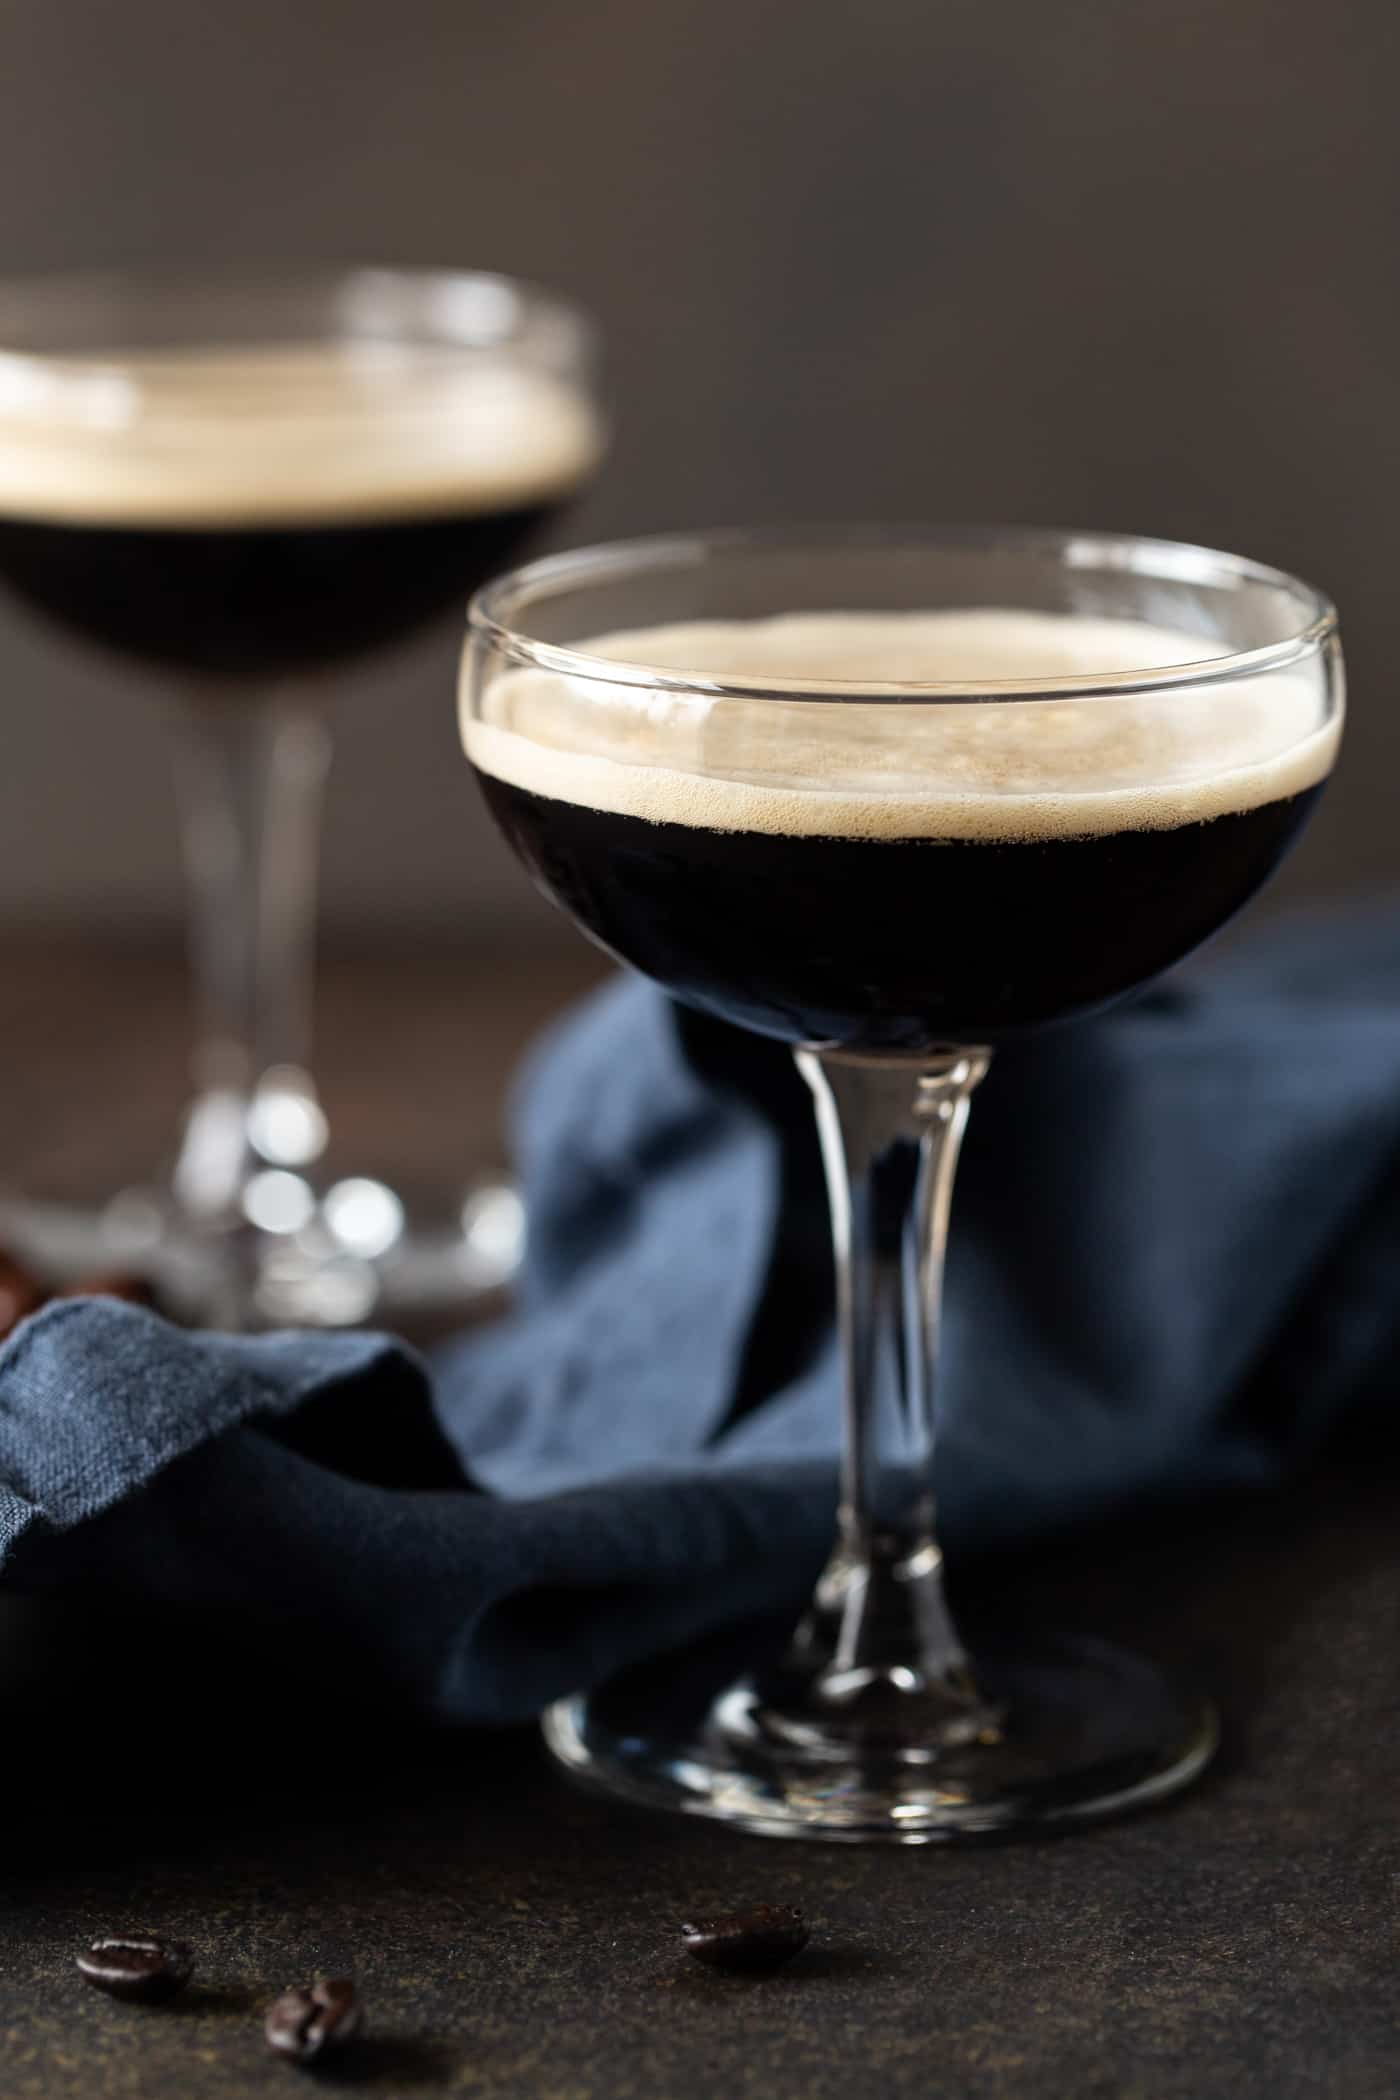 A close up of martini, with Coffee and Espresso.